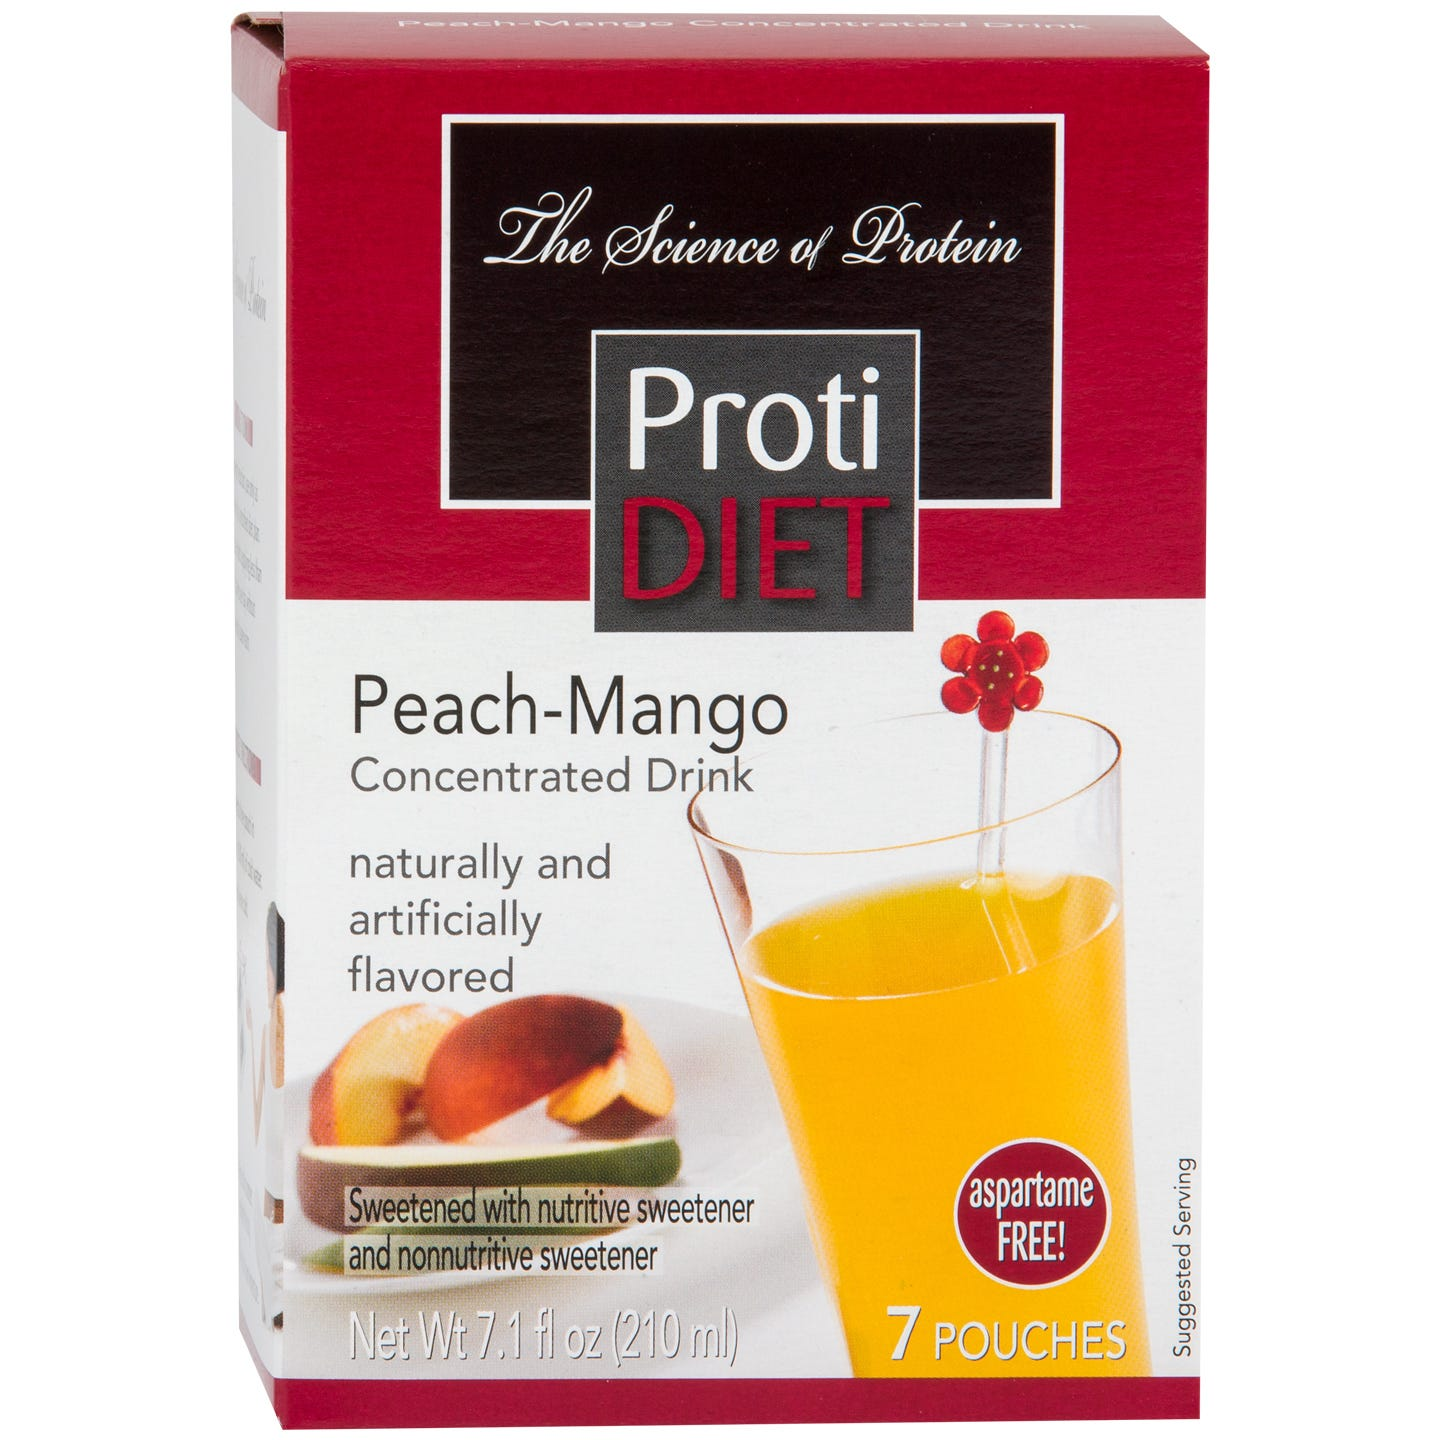 Protein Fruit Drink Concentrate Peach Mango (7 Ct) - ProtiDiet